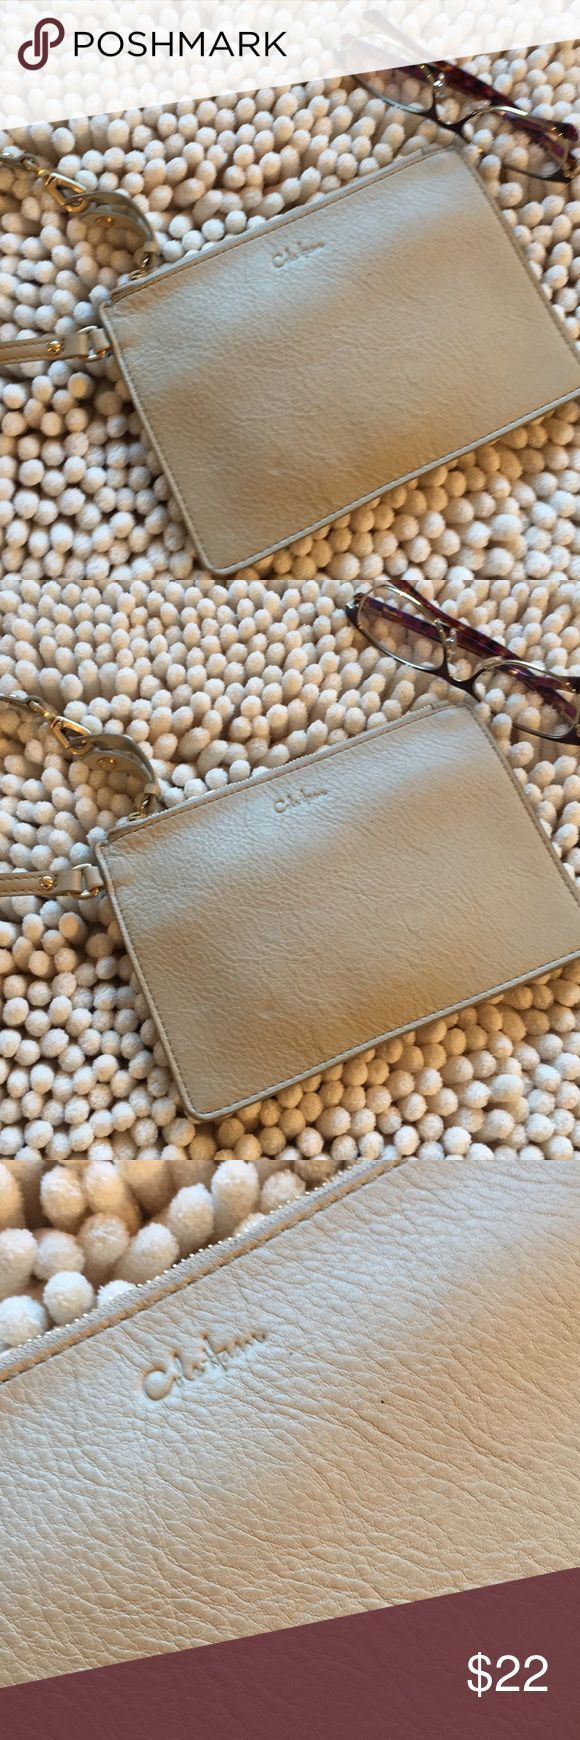 Cole Haan Leather Neutral Color Wristlet Great condition interior is spotless and clean gold hardware 7 1/2 inches wide 5 1/2 inches deep zips close all leather super cute great basic no rips no tears no stains non-smoking environment 💕 Cole Haan Bags Clutches & Wristlets